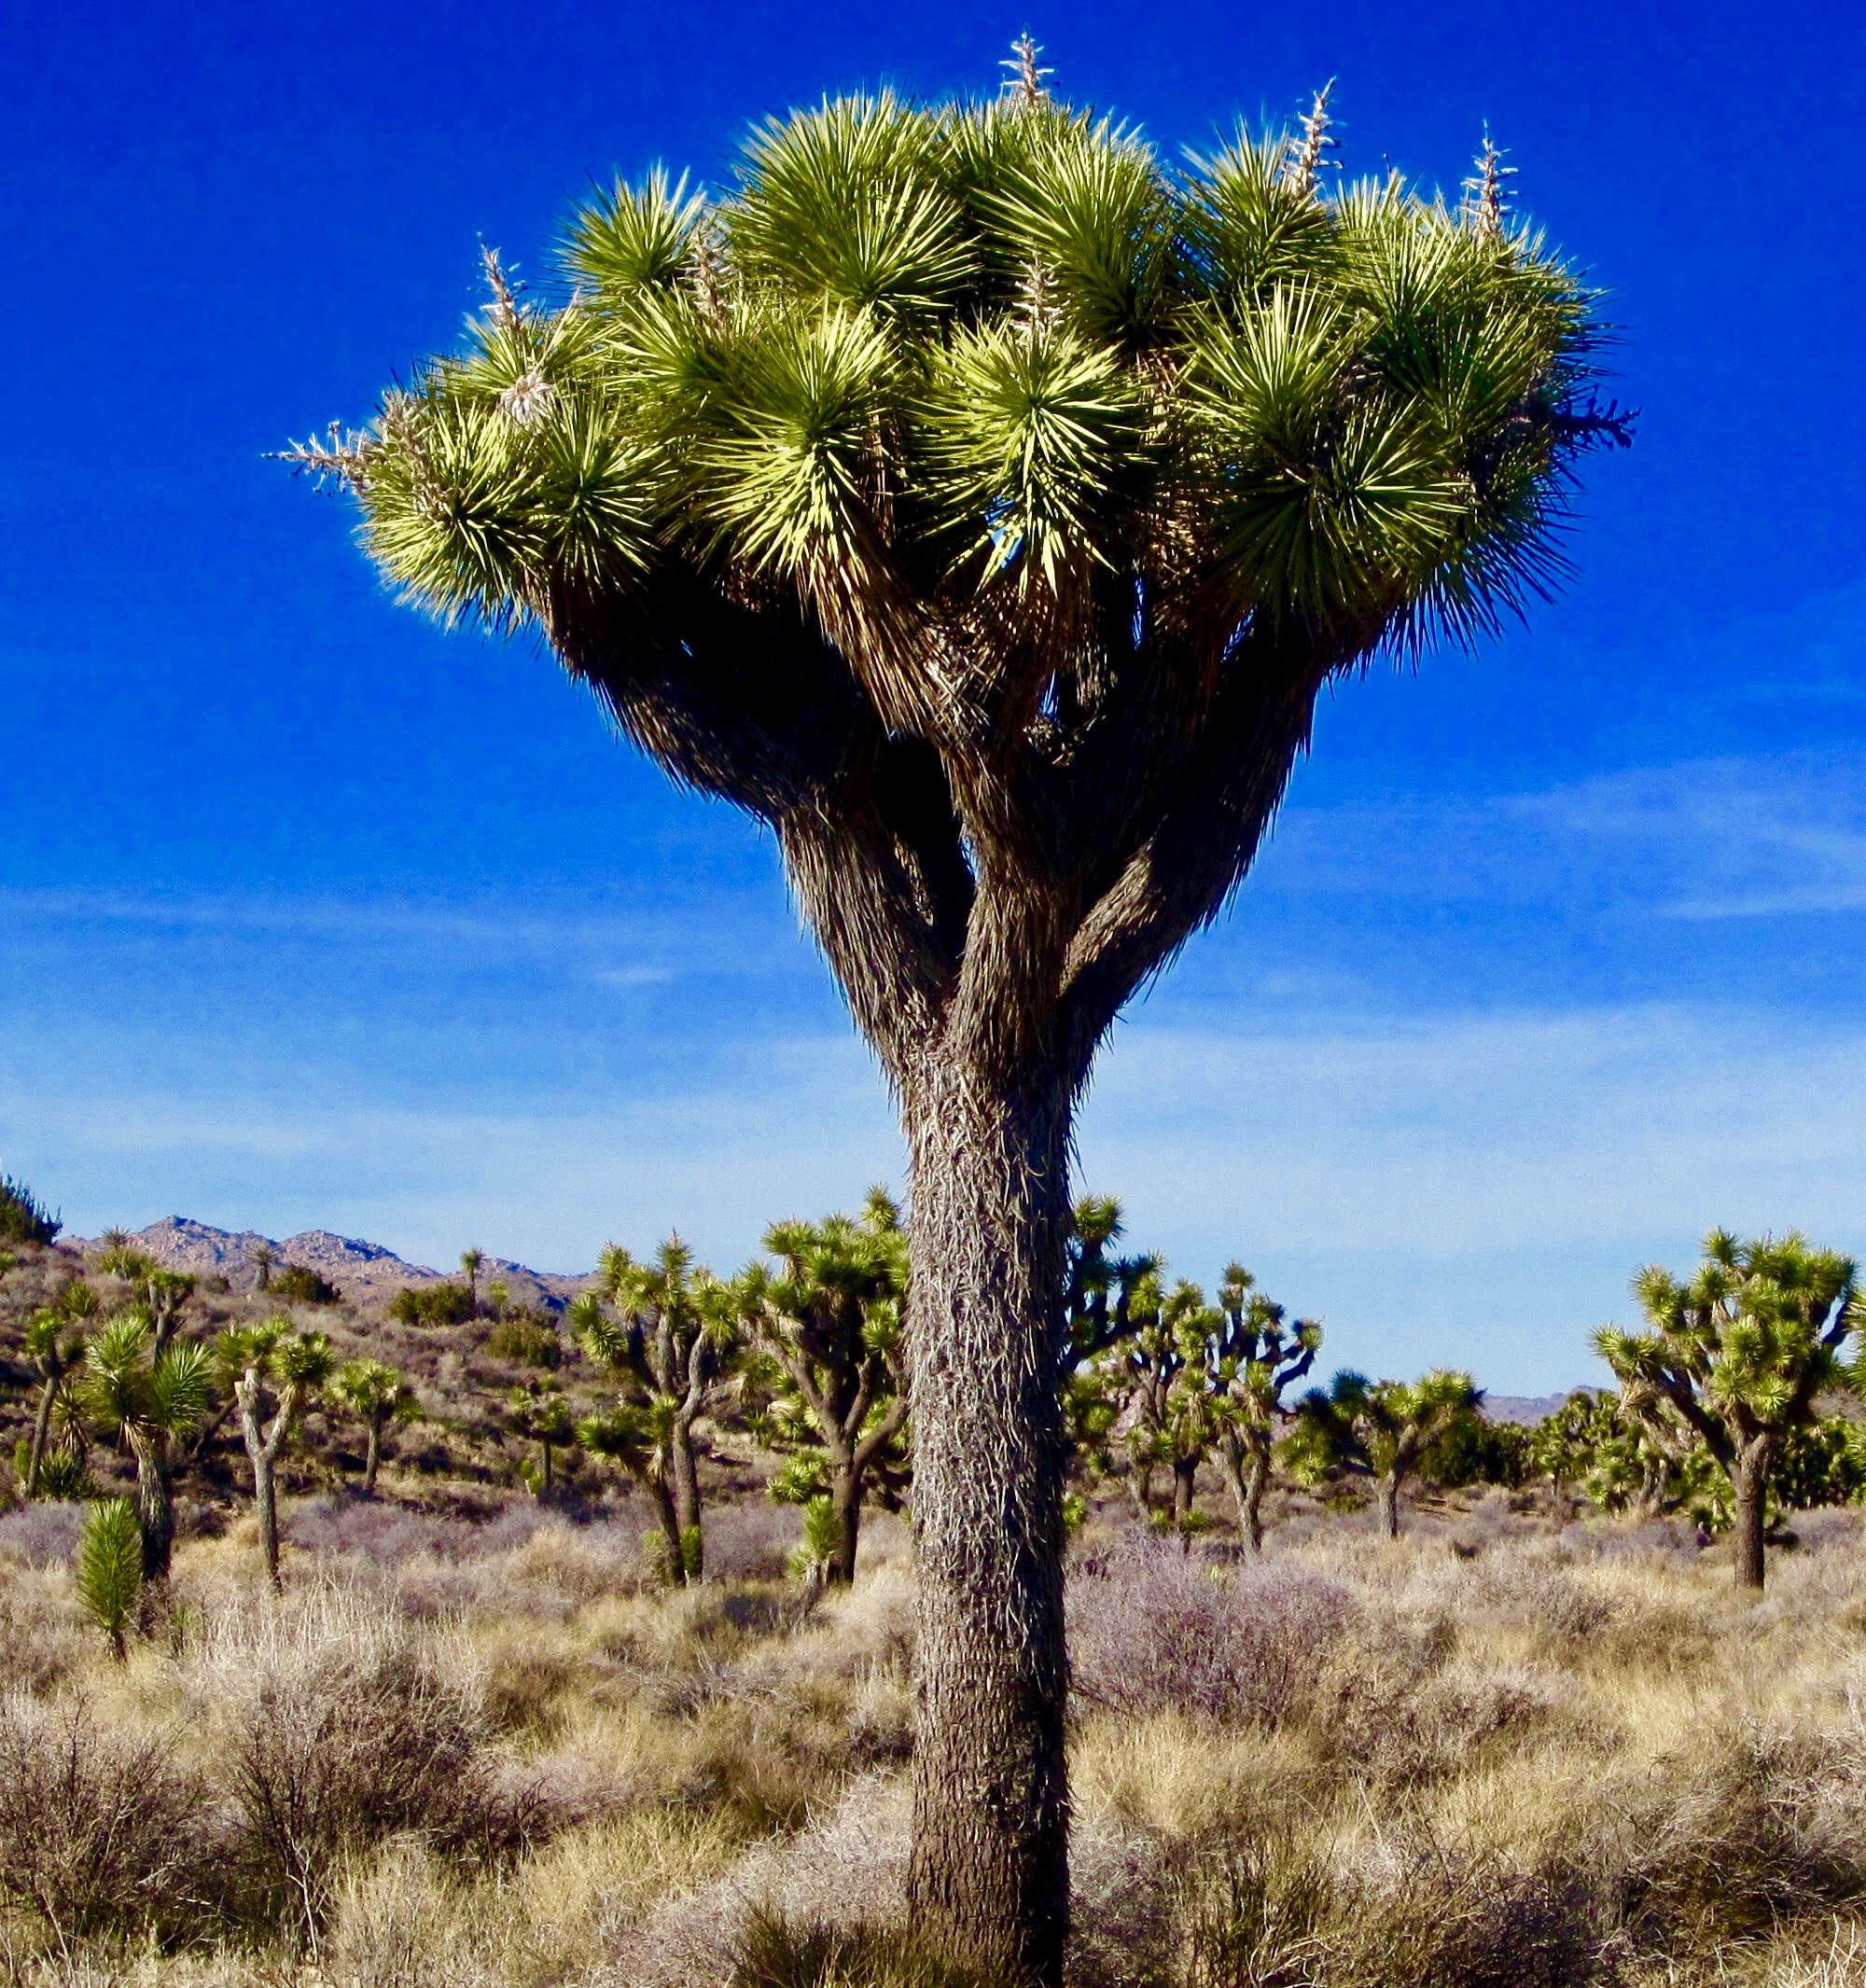 #41 Joshua Tree National Park